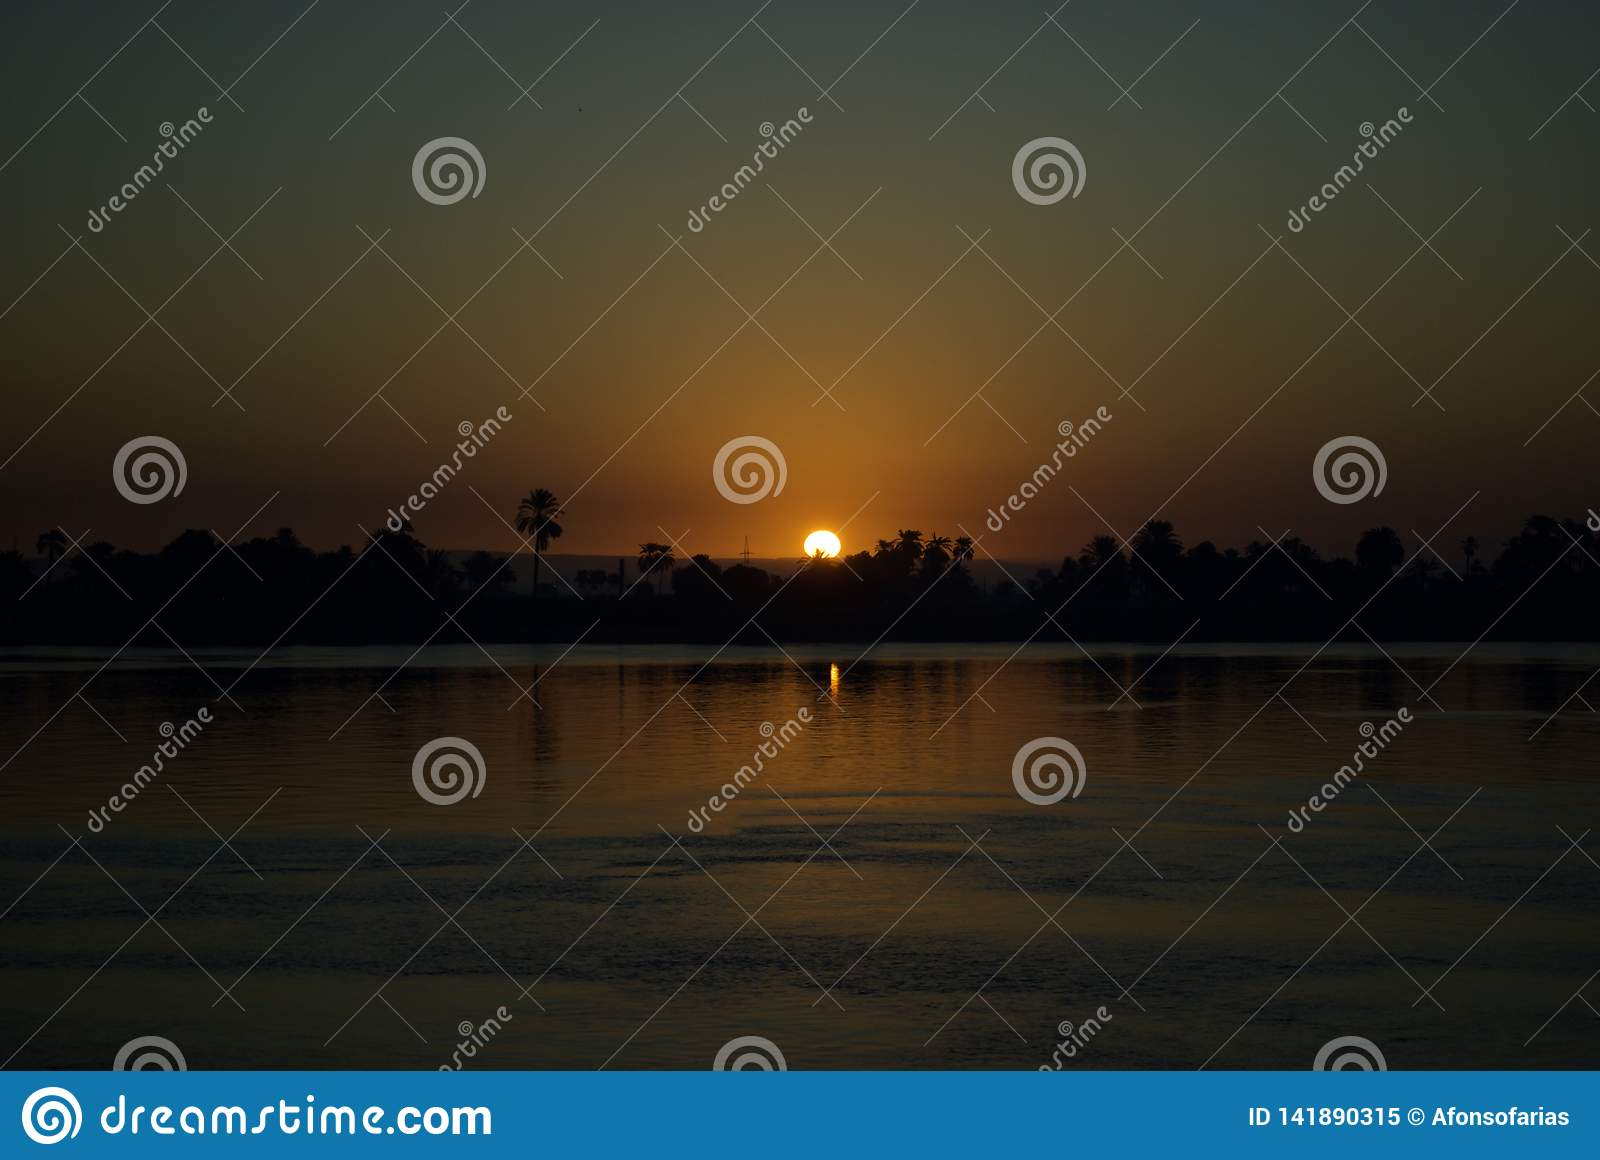 Zonsondergang in Nile River, Egypte